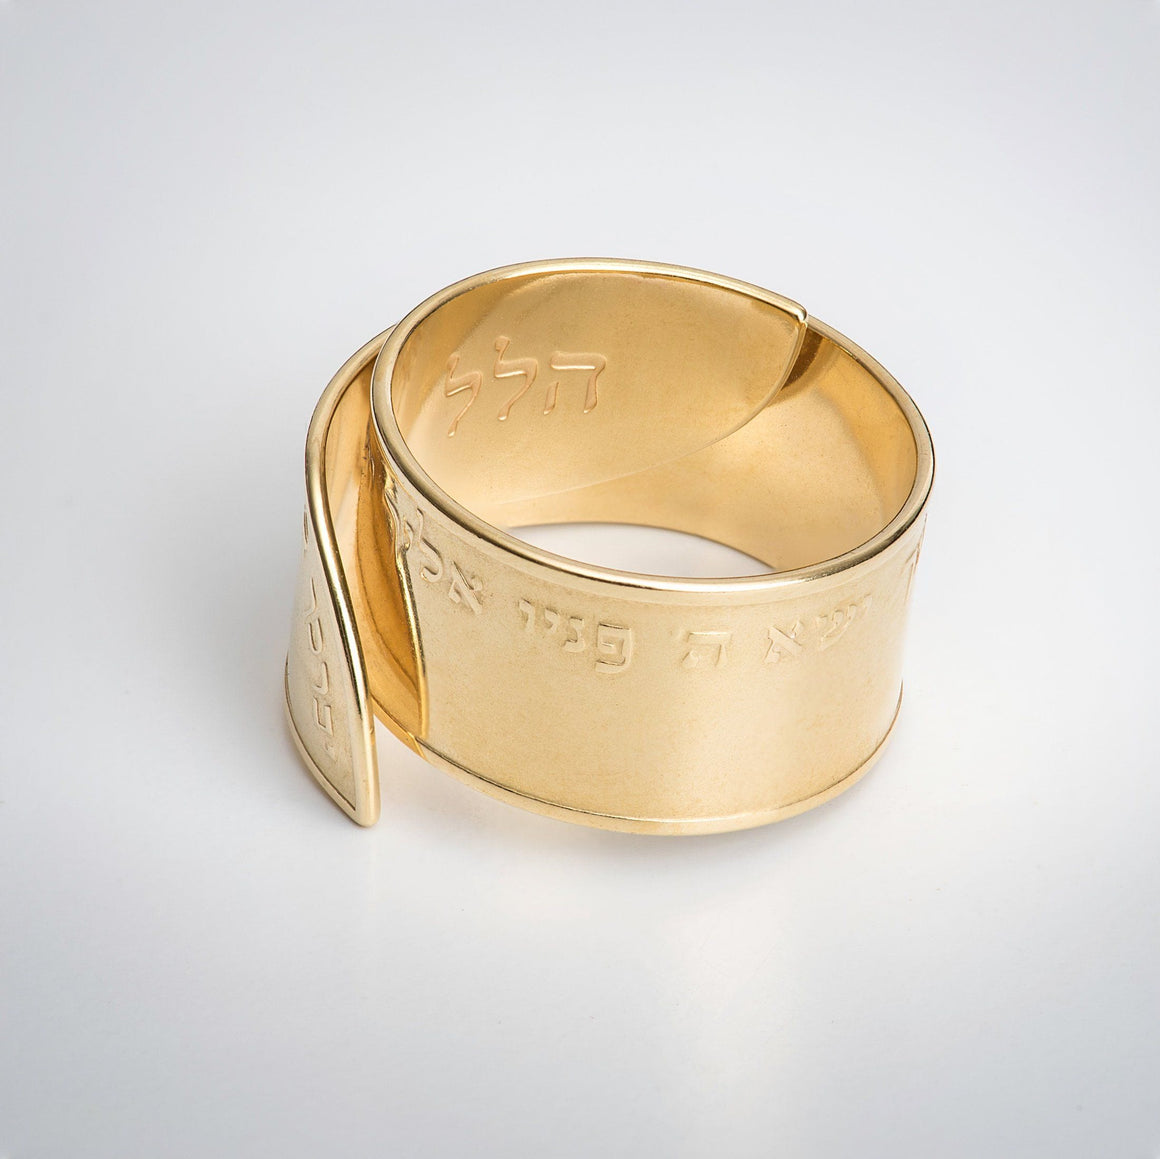 Statement Ring, Unique Gold Ring, Unisex